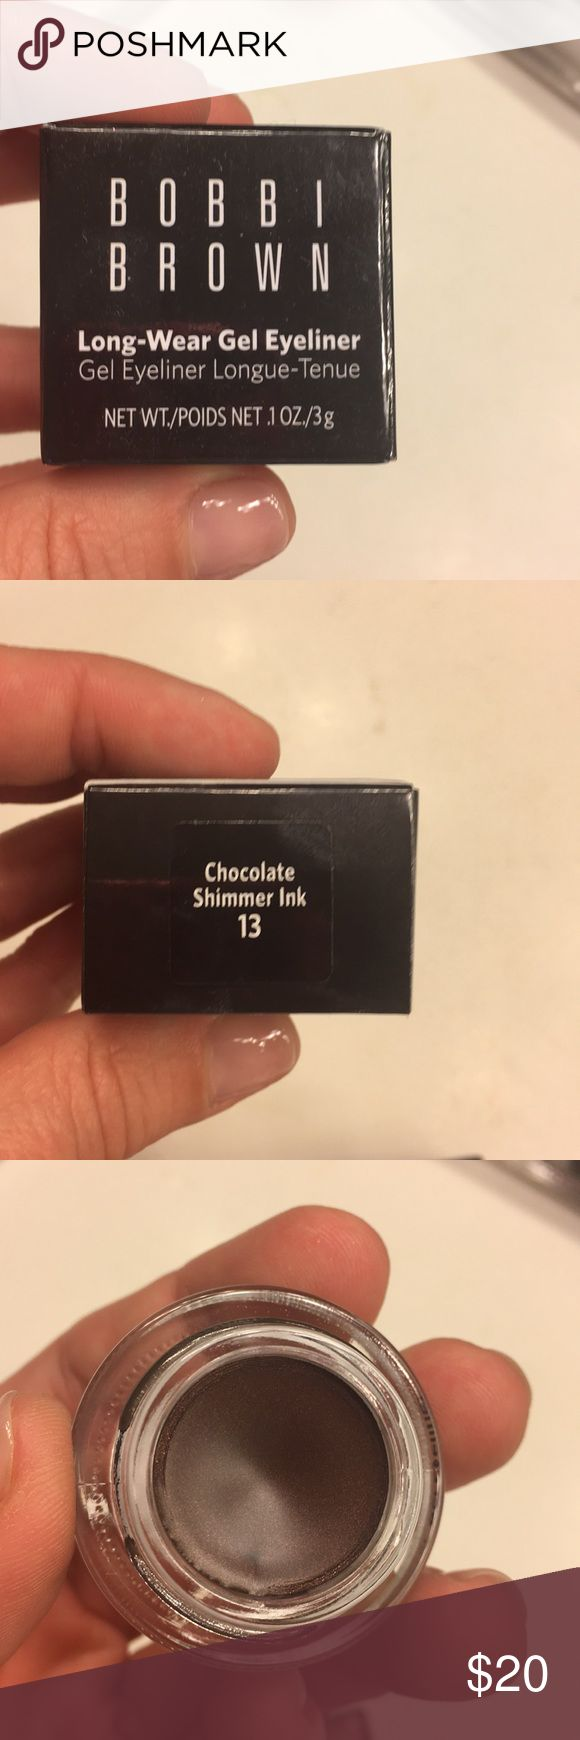 Bnib chocolate shimmer ink eyeliner Brand new in box Bobbi Brown gel eyeliner, chocolate shimmer ink. Full size. Makeup Eyeliner